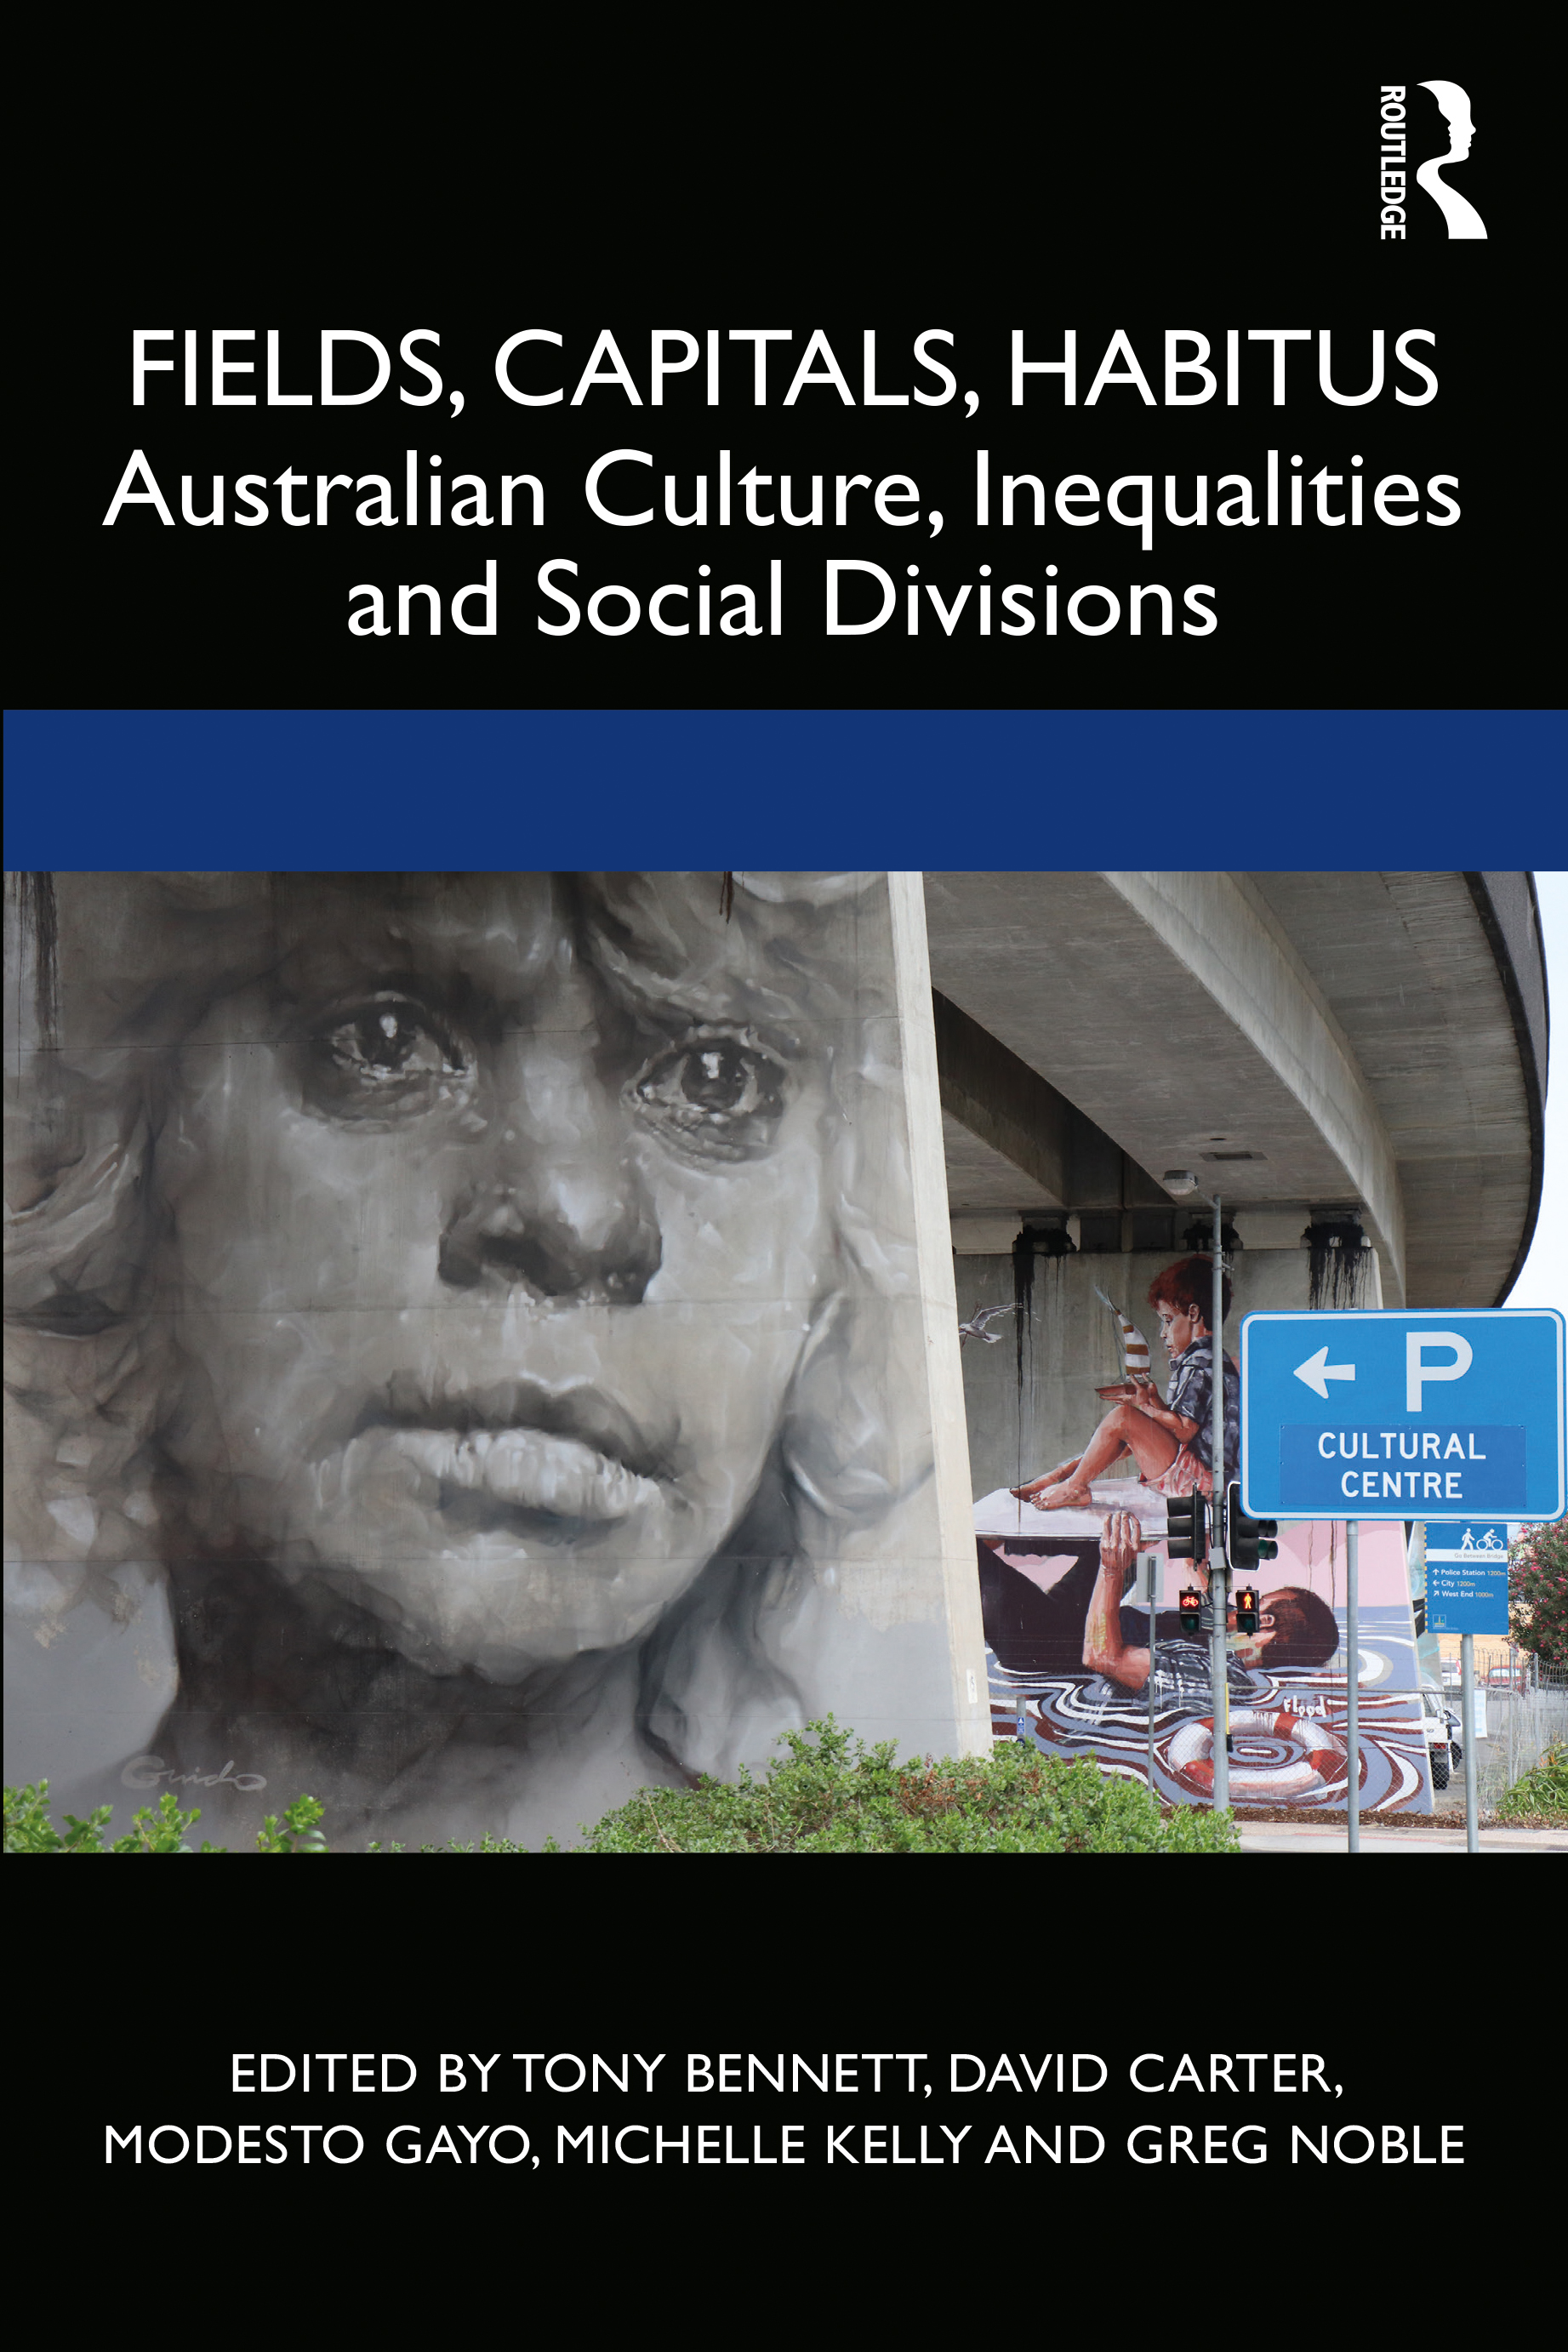 Fields, Capitals, Habitus: Australian Culture, Inequalities, and Social Divisions book cover